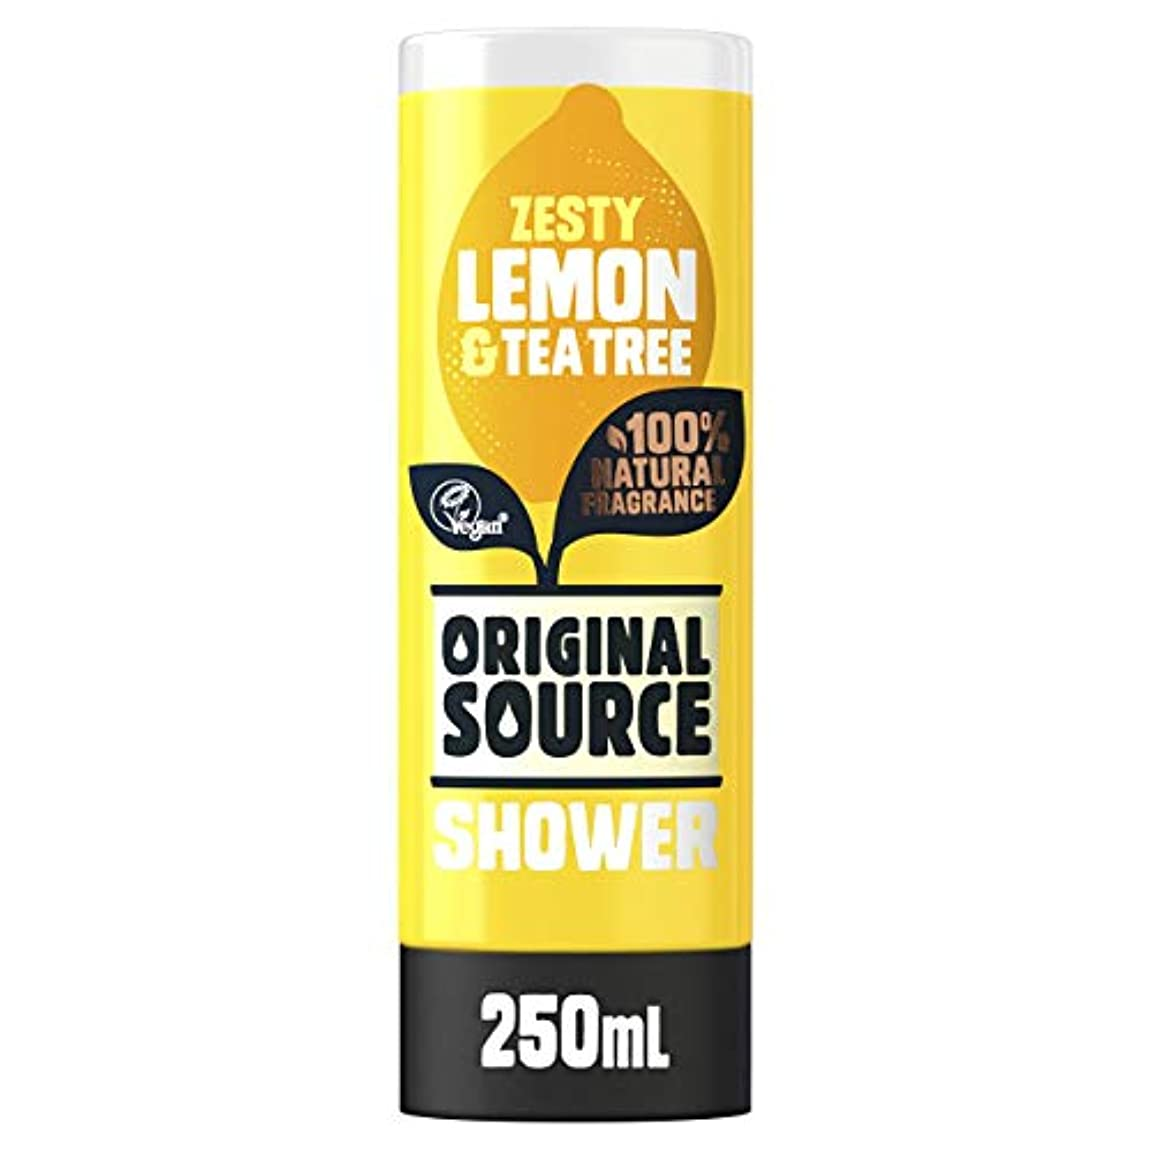 うがい巻き取り空いているCussons Lemon and Tea Tree Original Source Shower Gel by PZ CUSSONS (UK) LTD